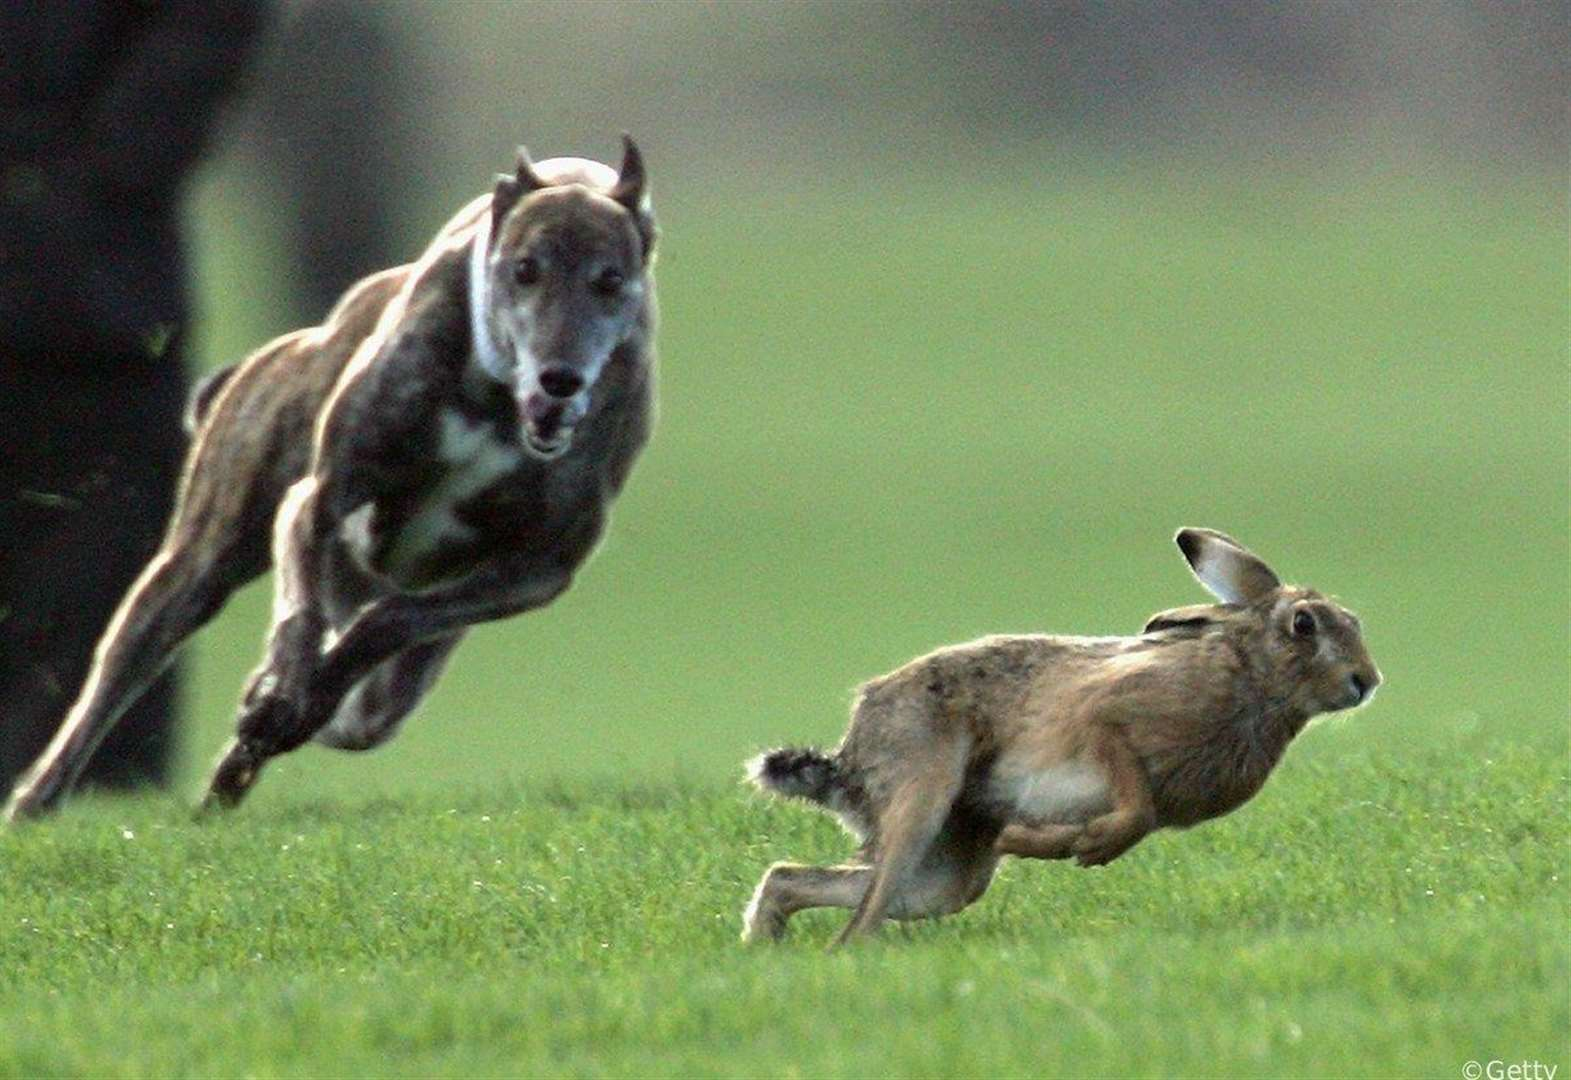 Man arrested for hare coursing and other offences